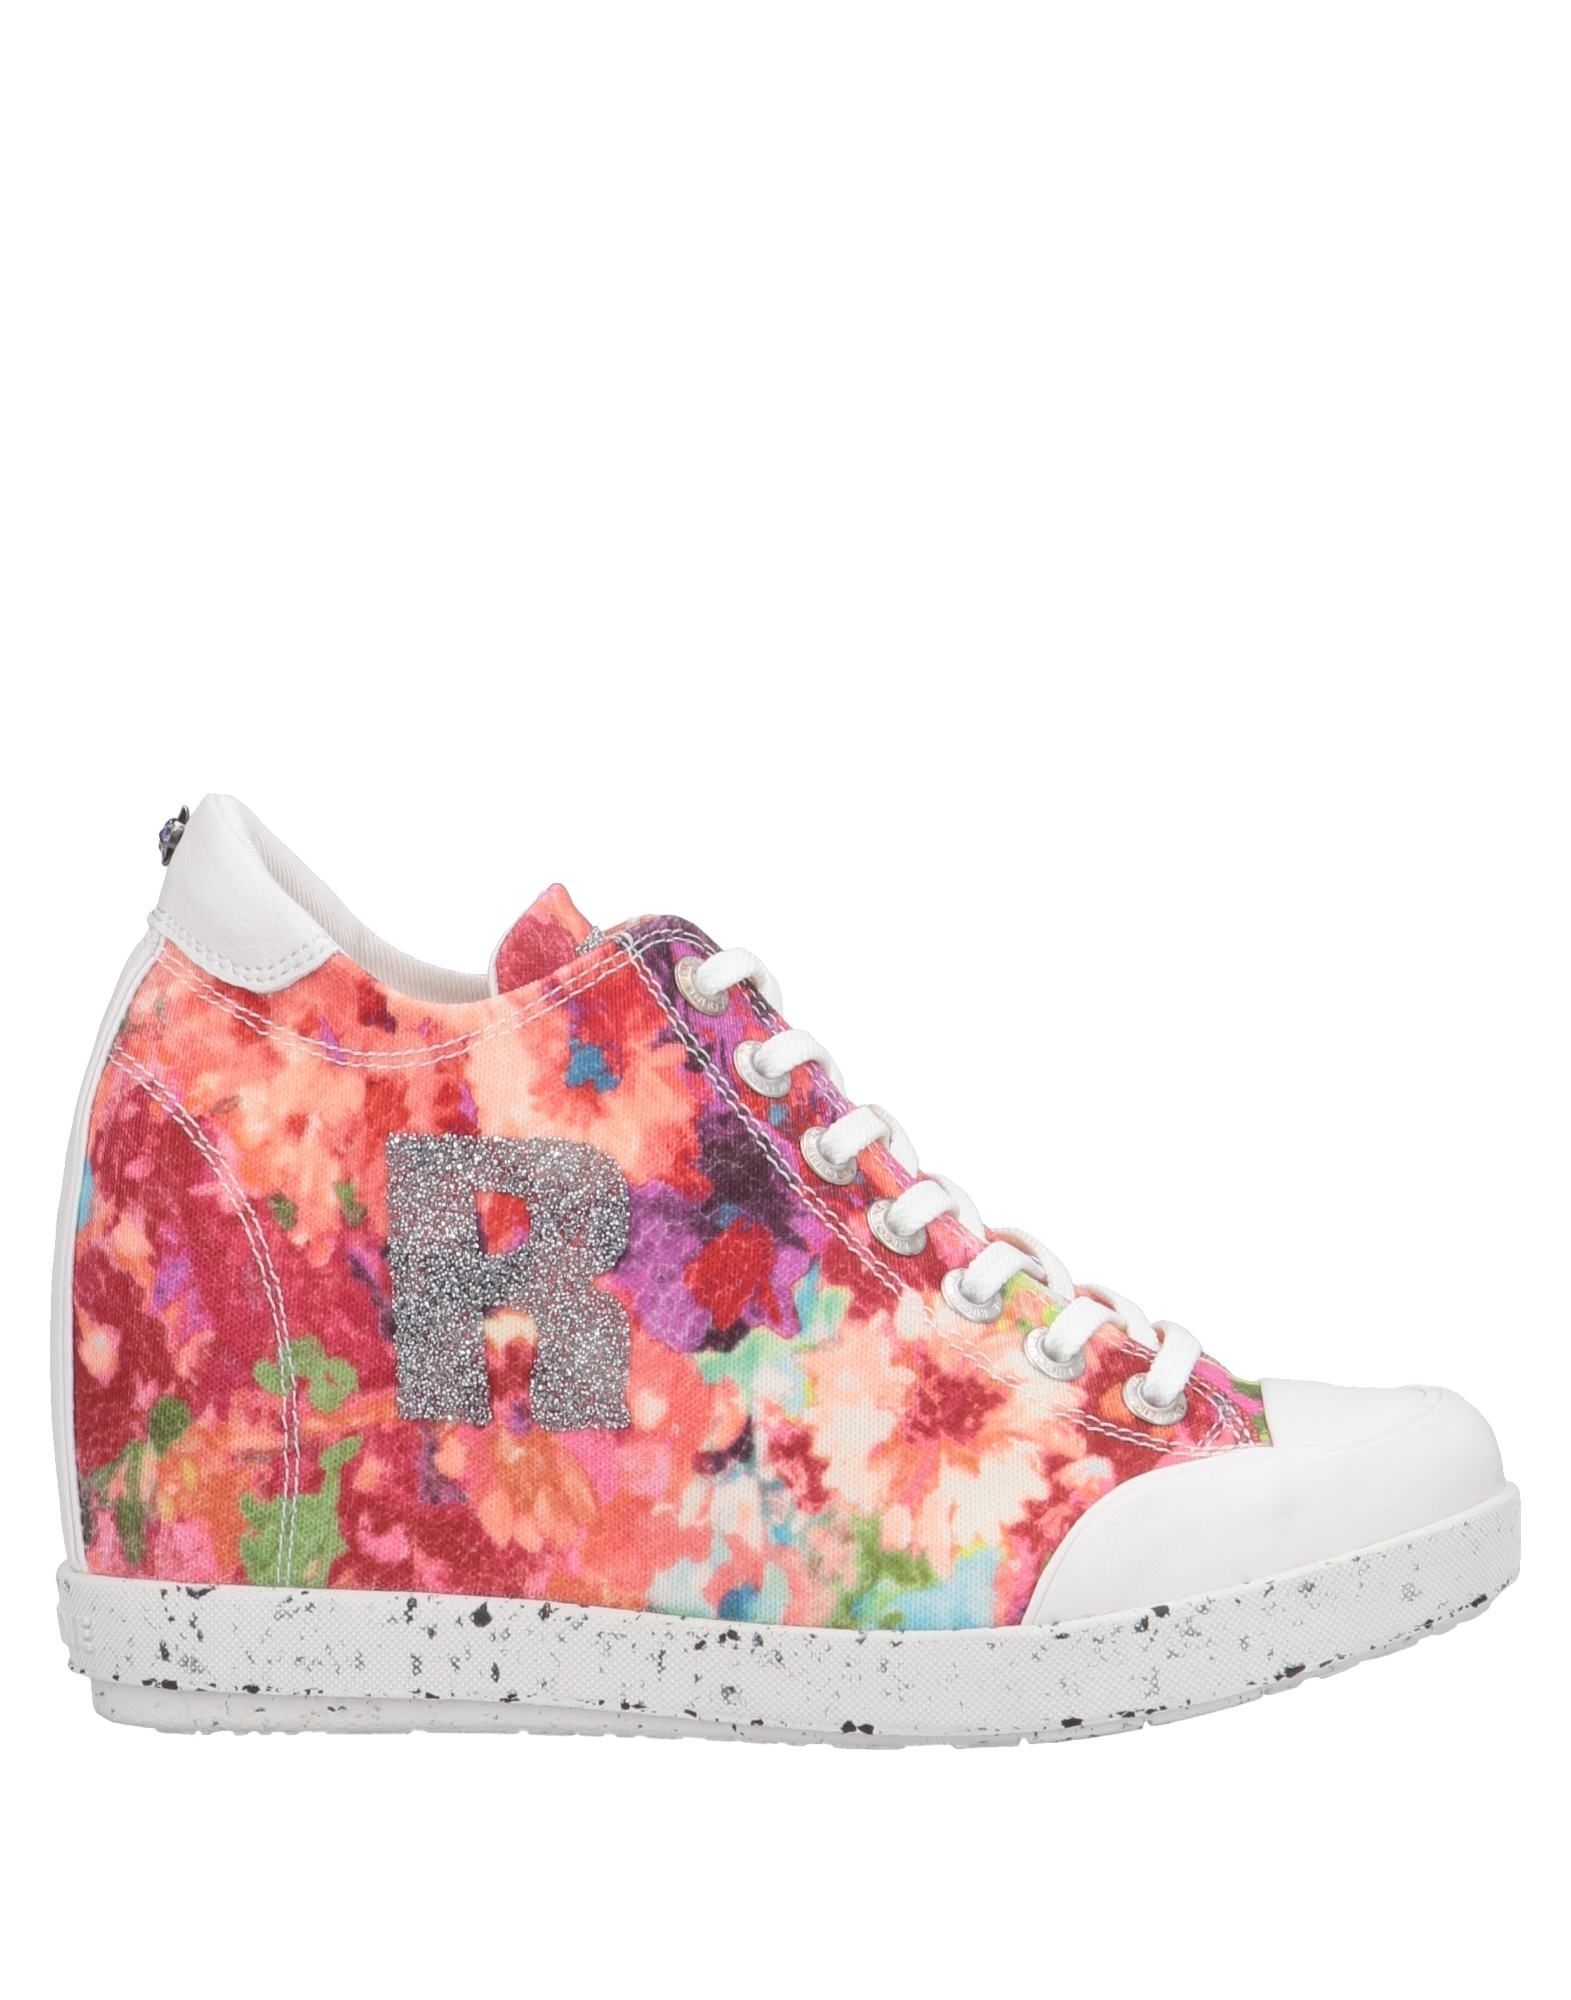 Ruco Line Sneakers - Women Ruco Line Sneakers online on 11559759NF  United Kingdom - 11559759NF on 976350